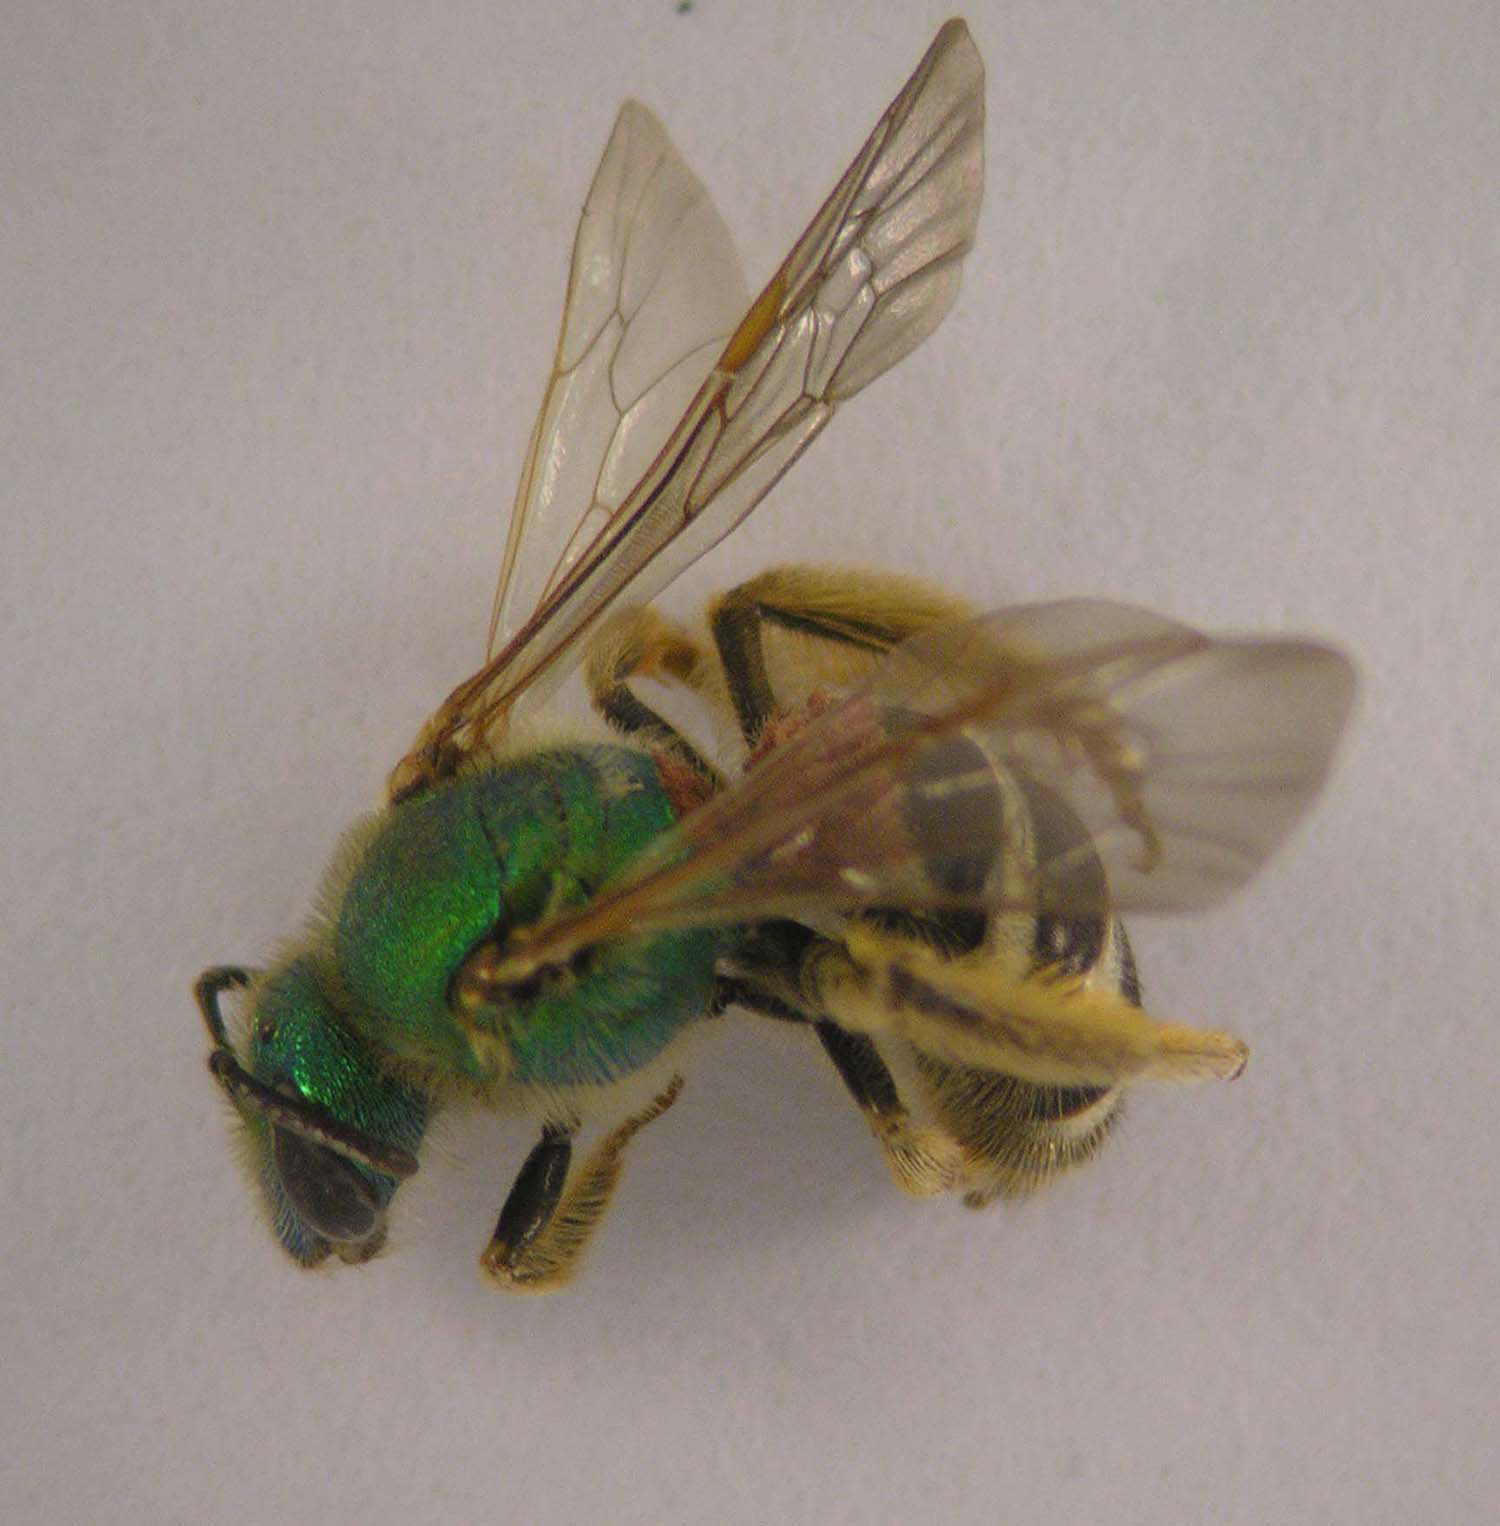 Ground Nesting Bees Are Important Pollinators Kentucky